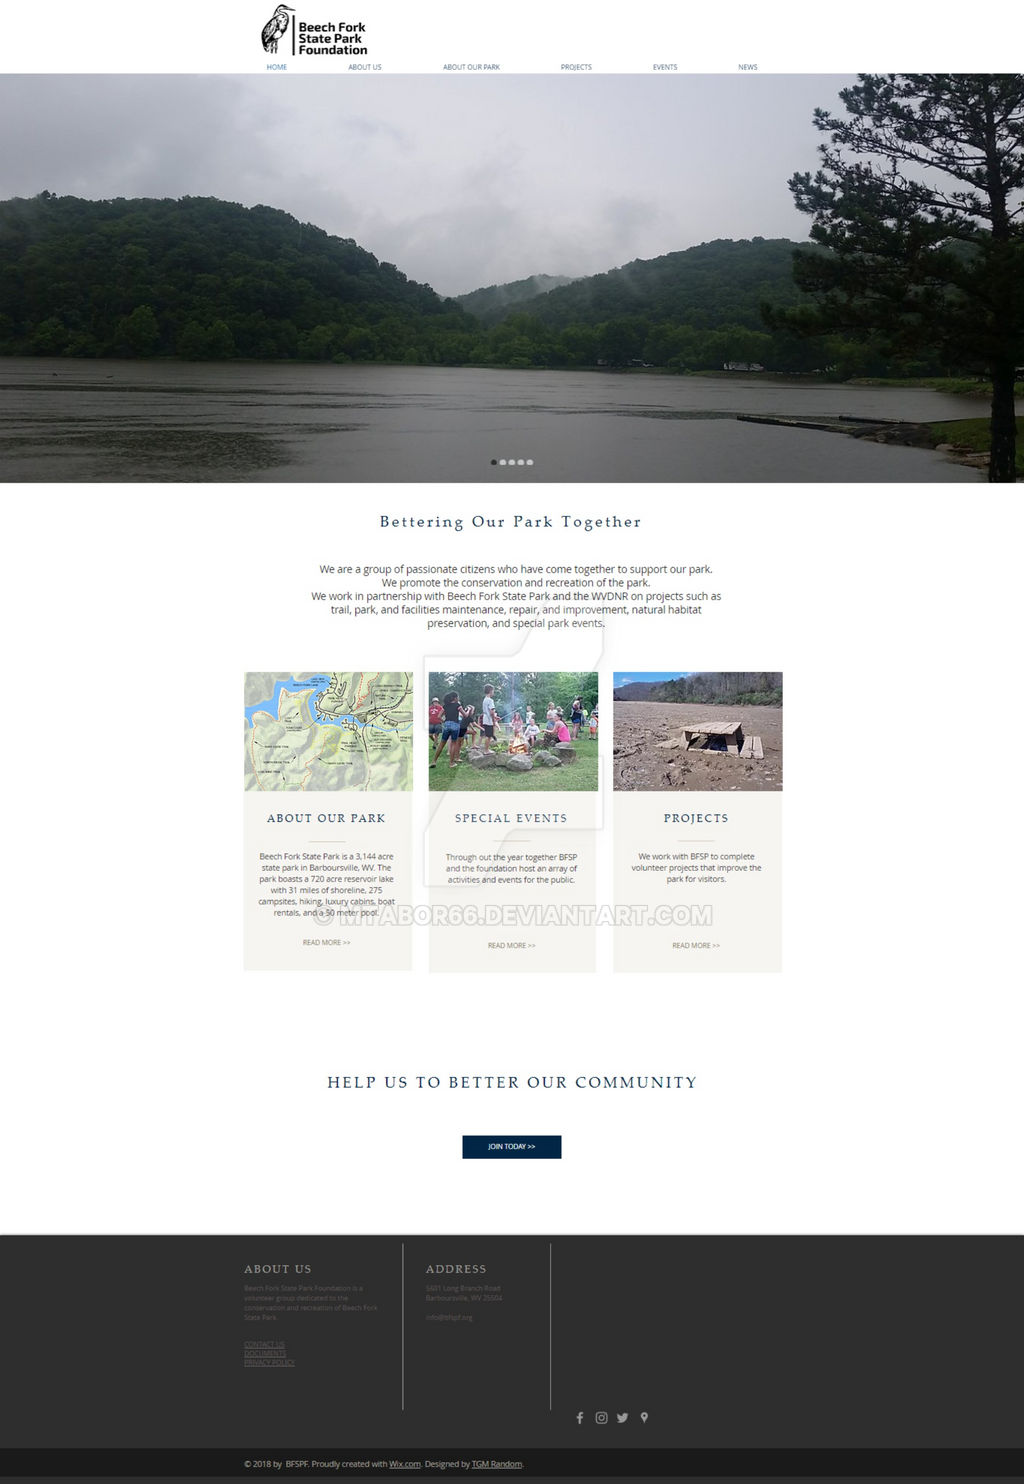 Beech Fork State Park Foundation Website Design